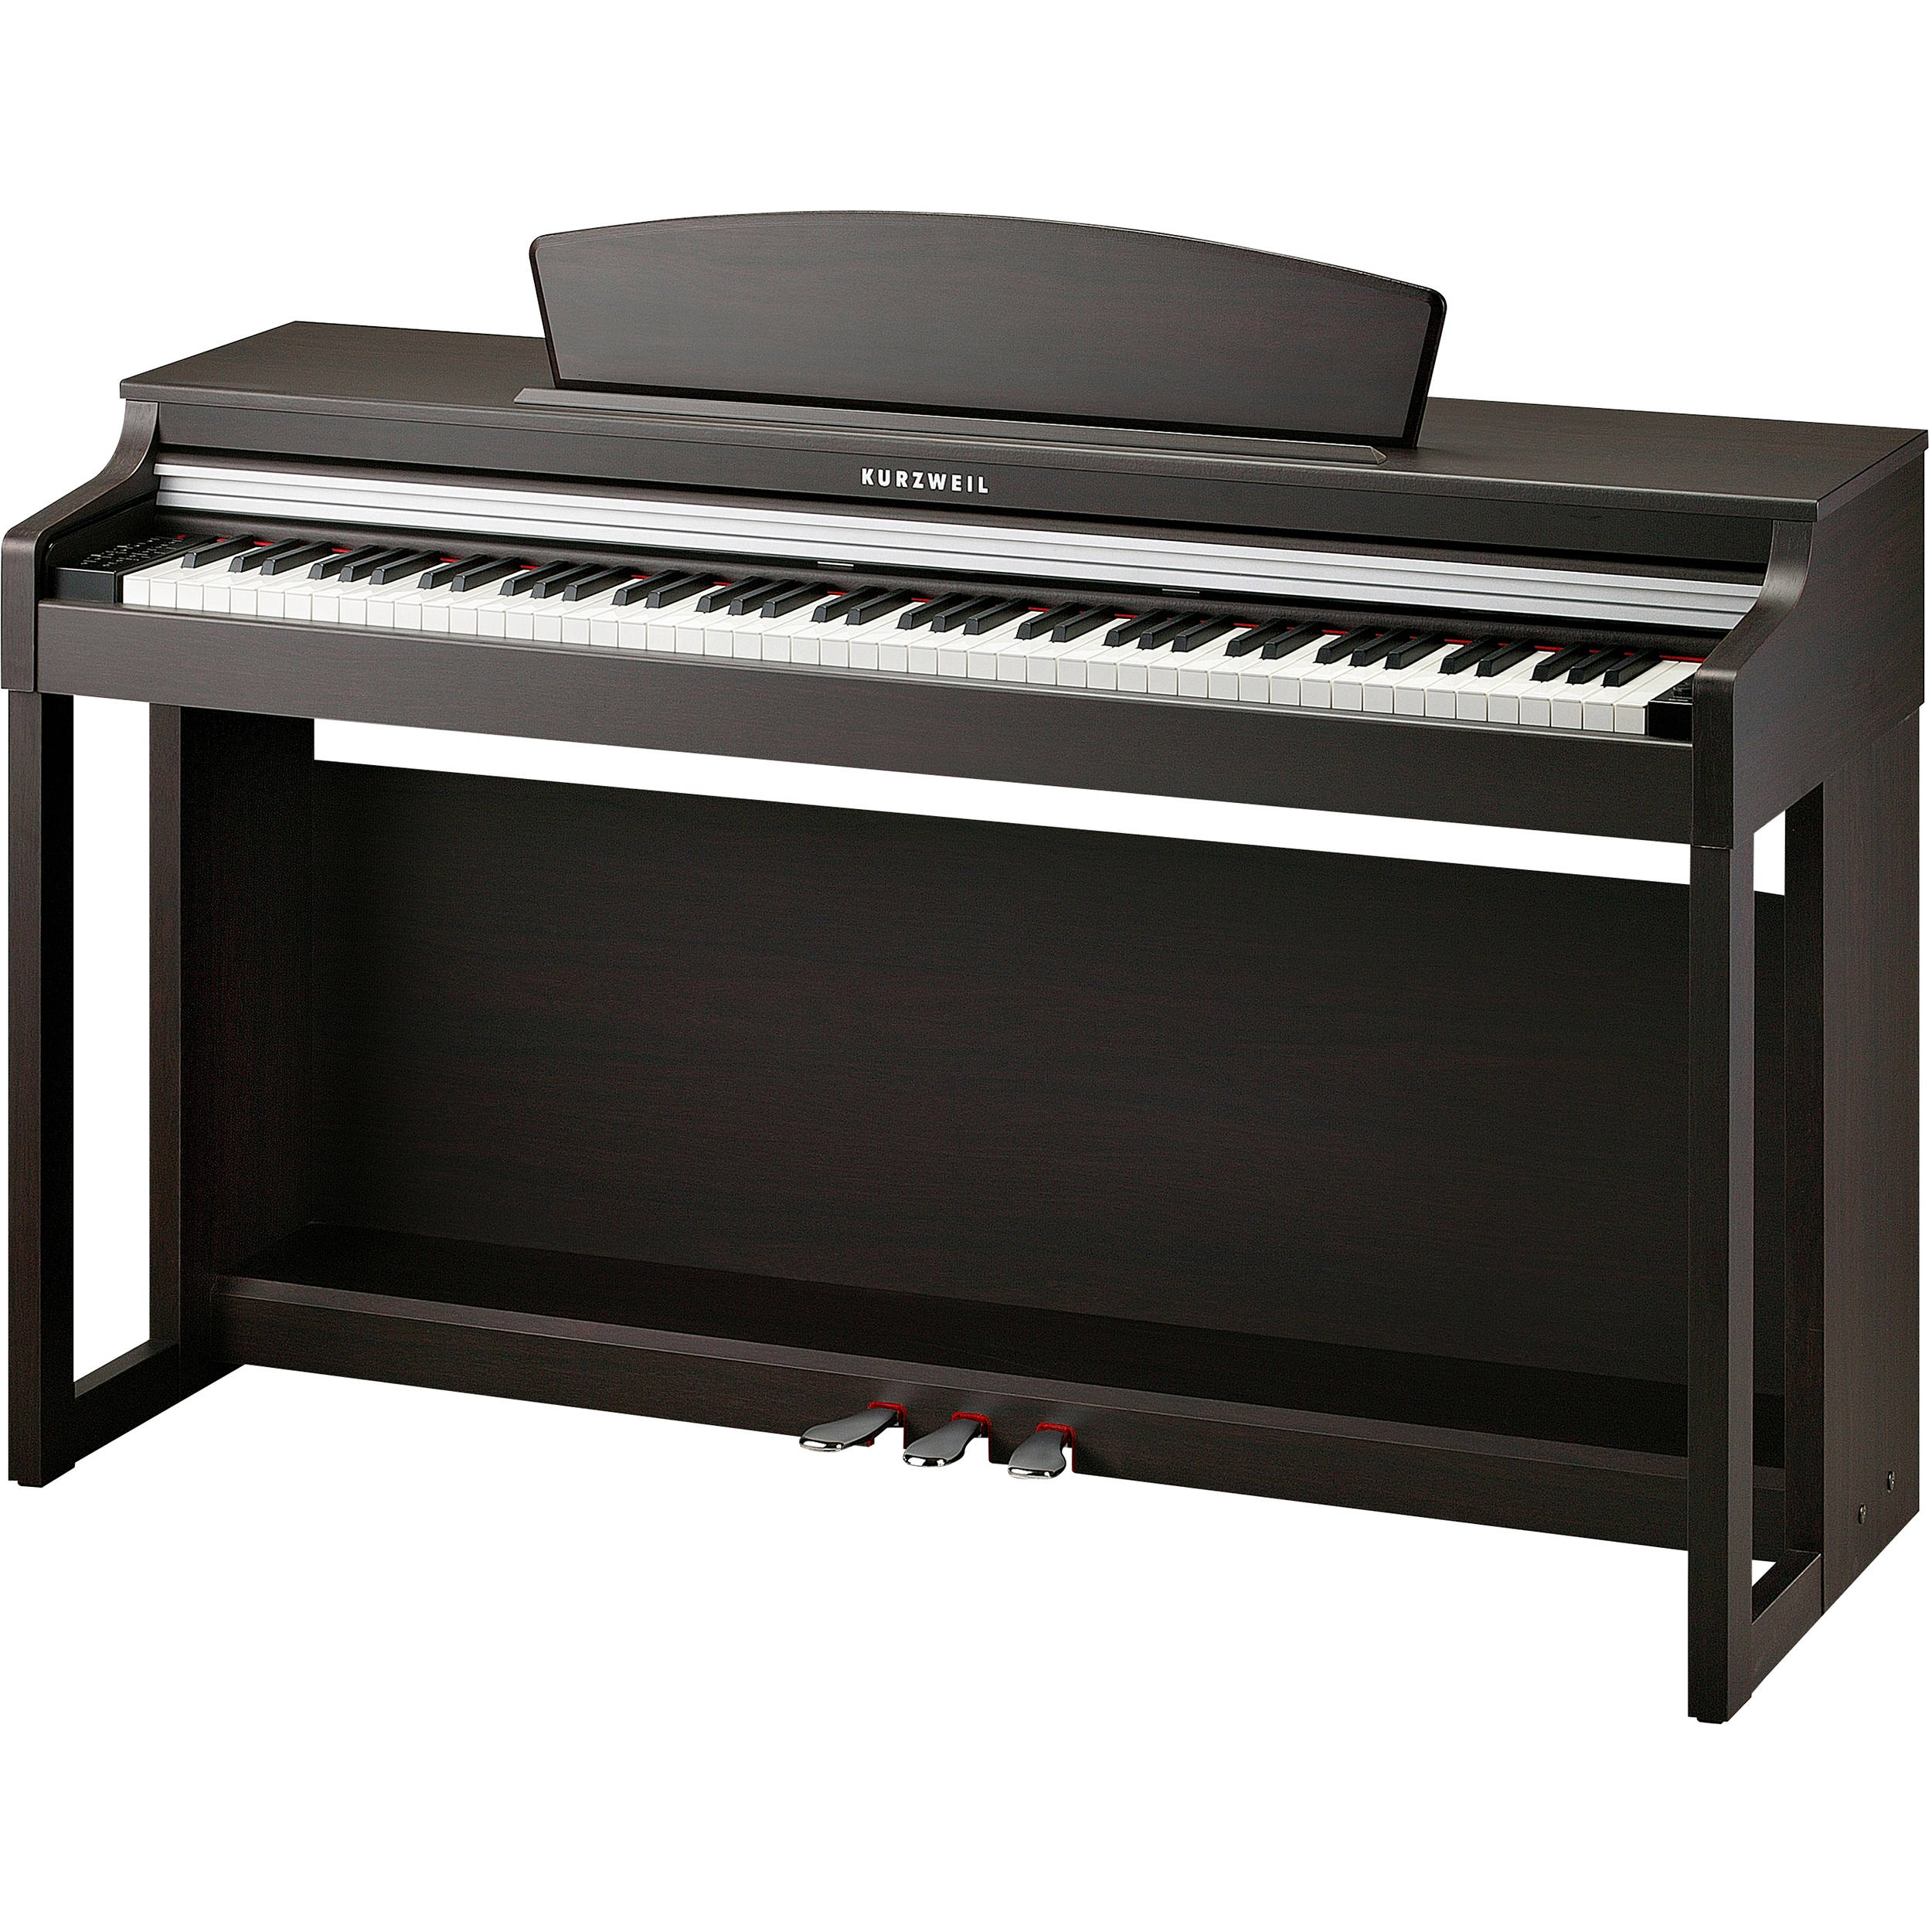 kurzweil m230 88 key digital piano with spinet style m230 sr b h. Black Bedroom Furniture Sets. Home Design Ideas